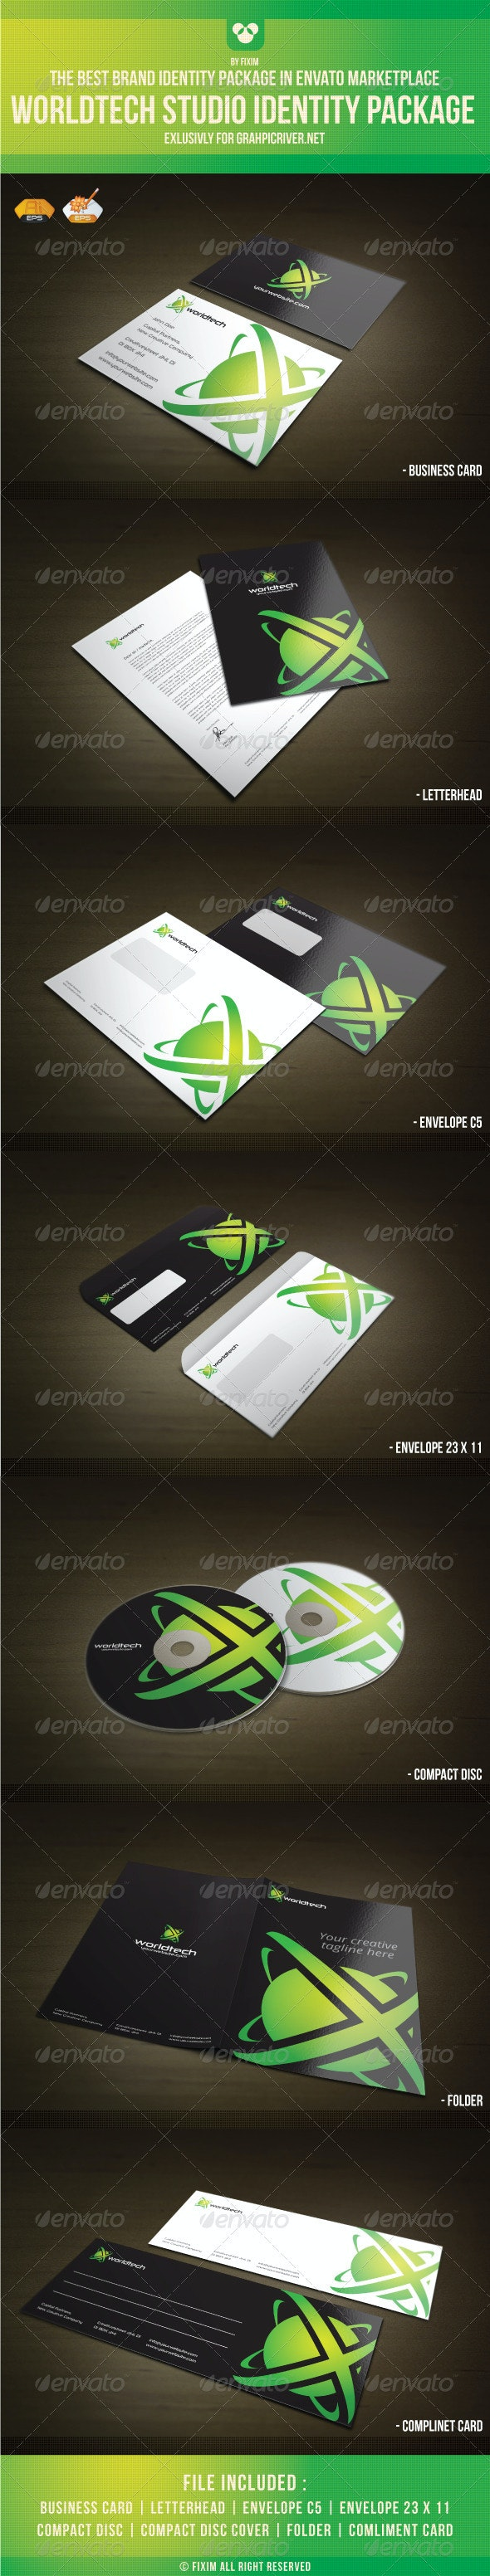 WorldTech Identity Package - Stationery Print Templates